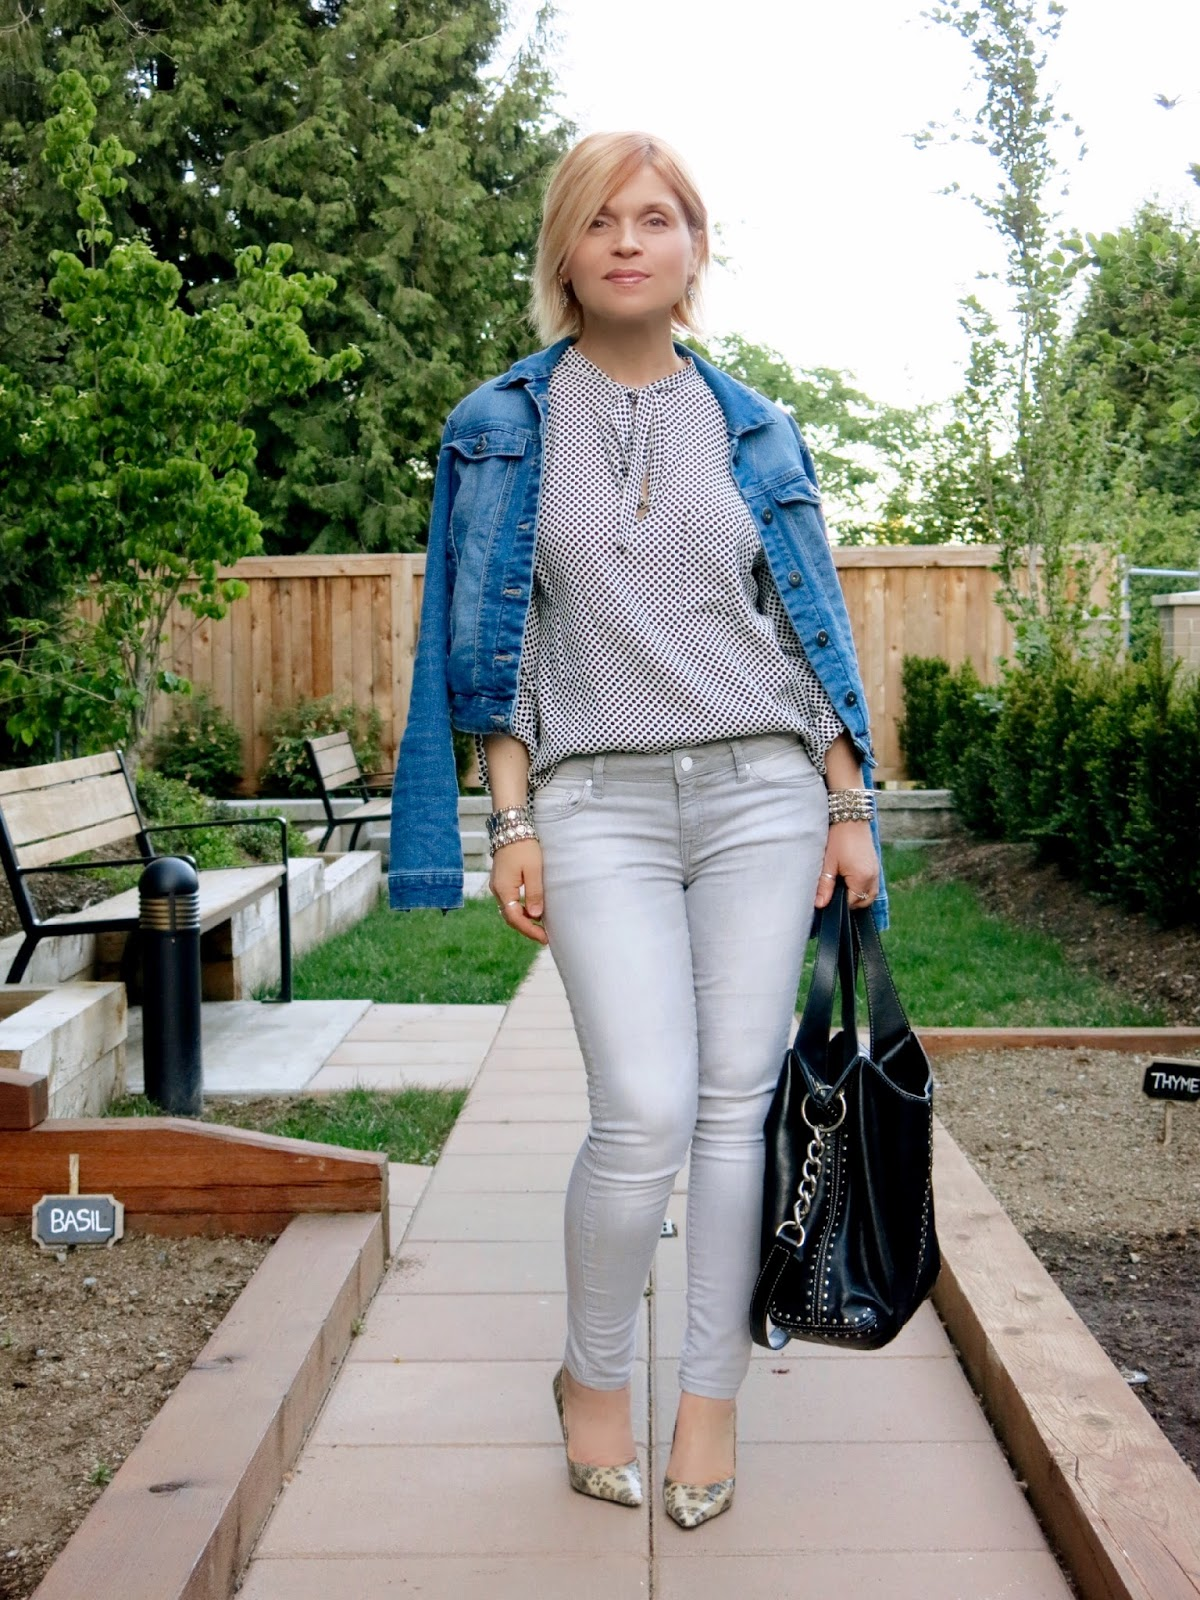 styling grey skinny jeans with a bow-front blouse, denim jacket, and reptile pumps